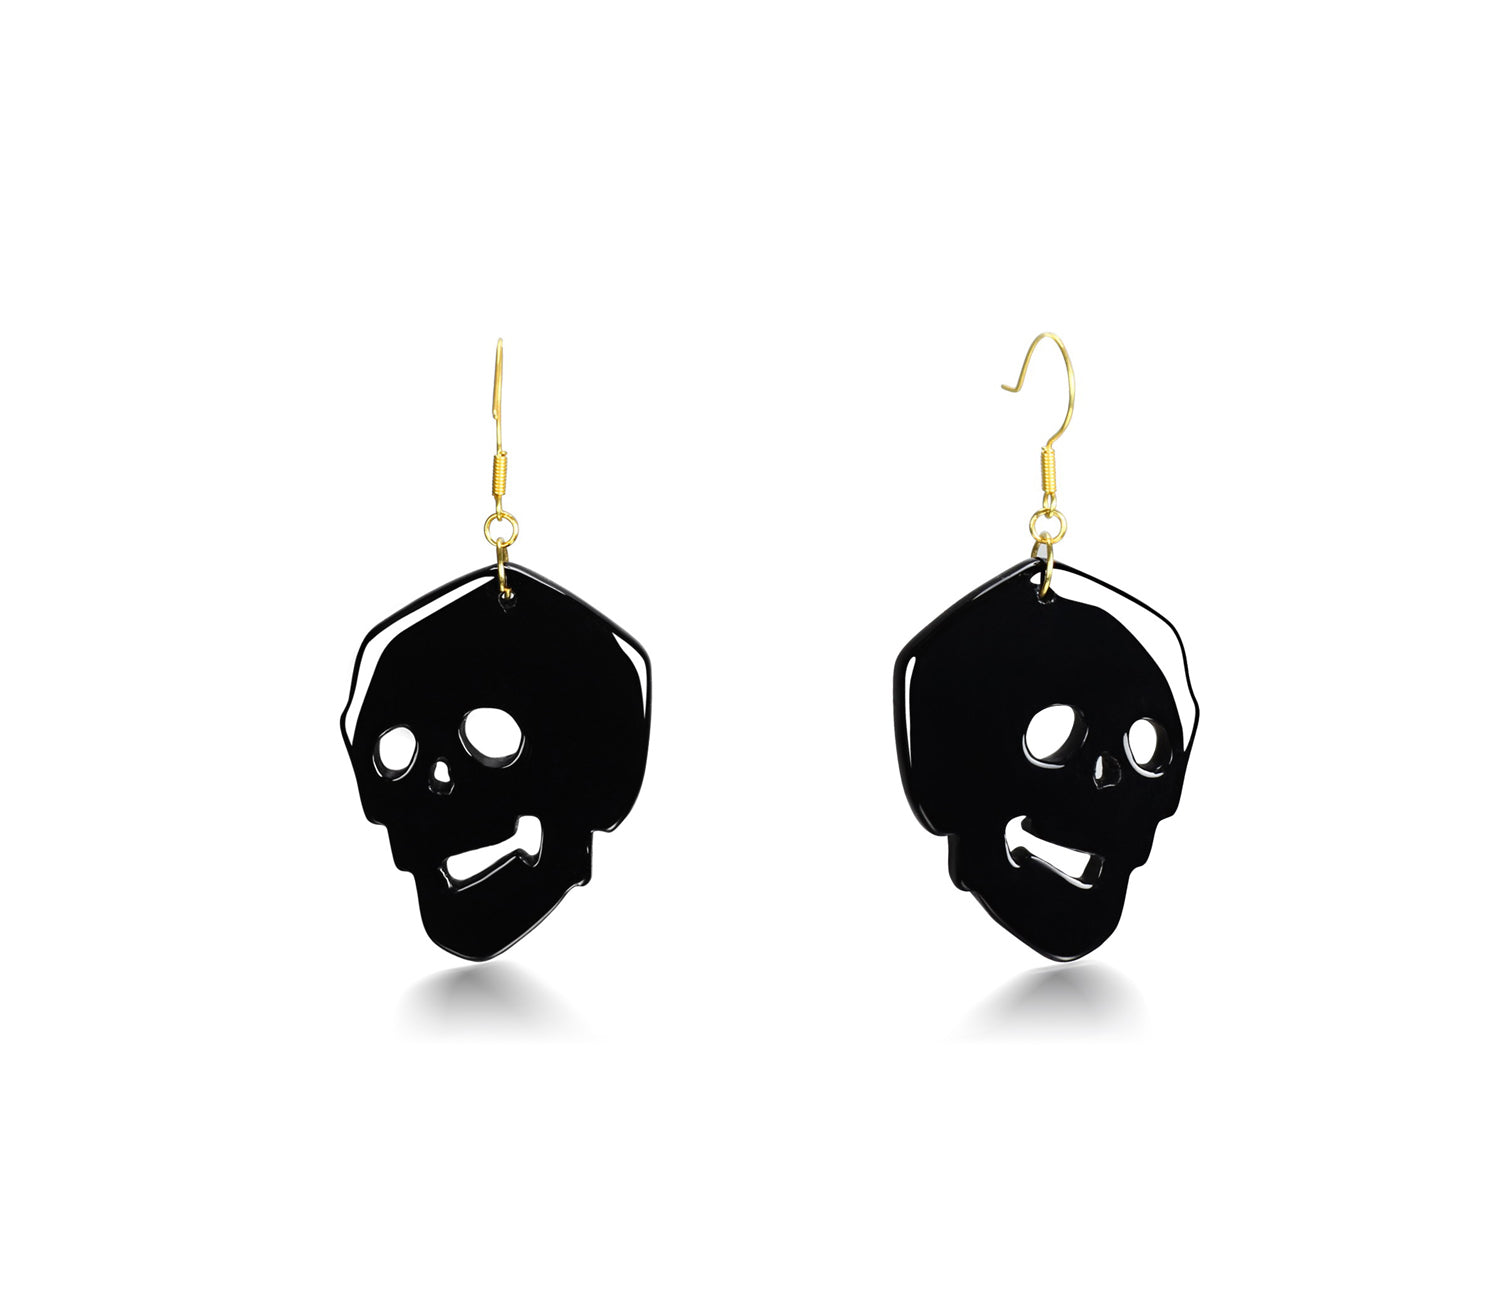 Black Onyx Carved Crystal Skull Earrings 1